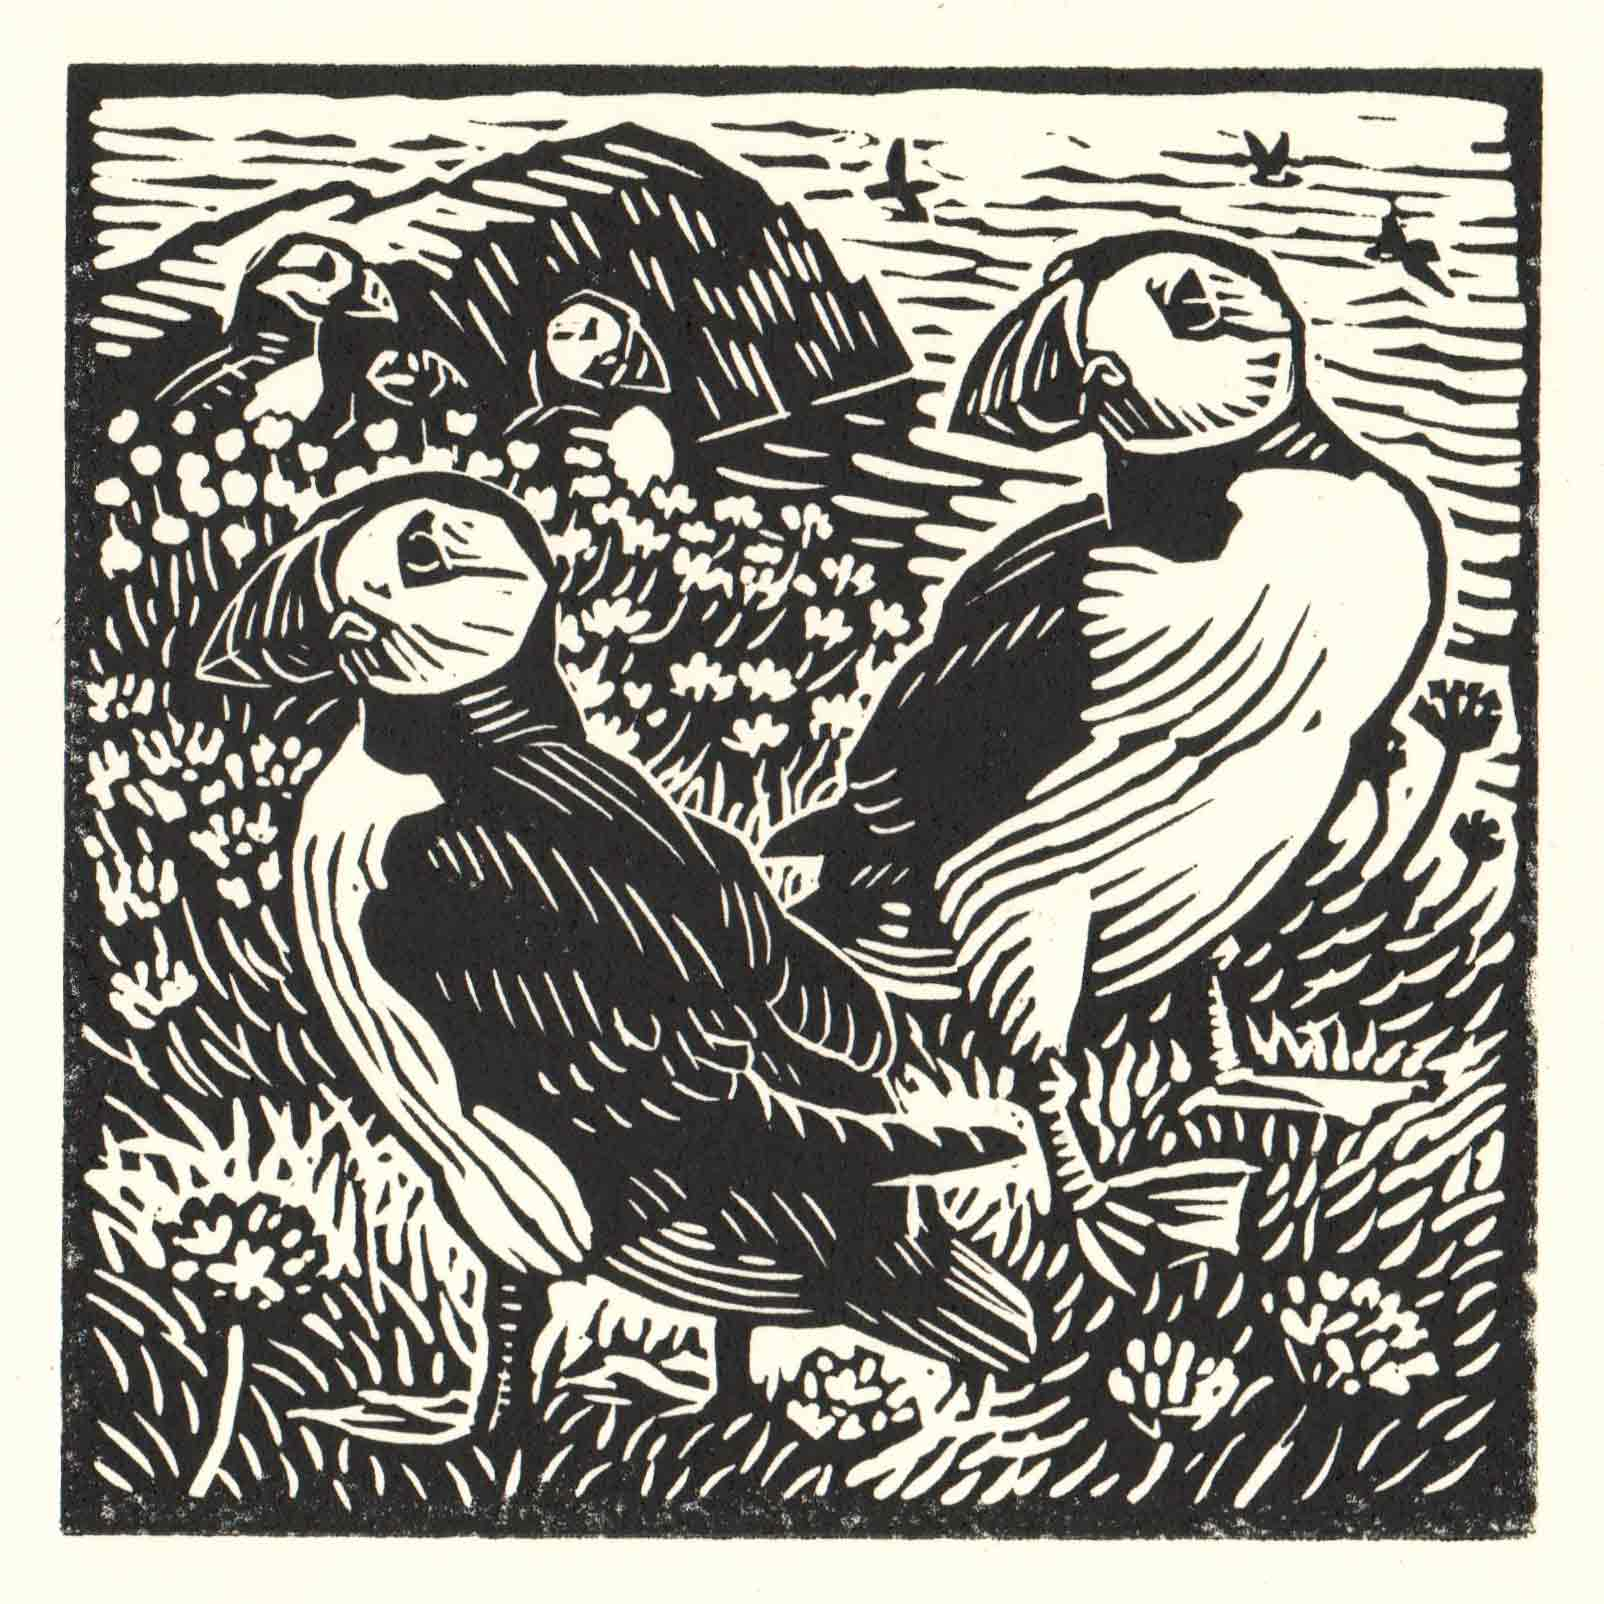 Art Greeting Card by Richard Allen, Puffin, Linocut, Two puffins on a cliff